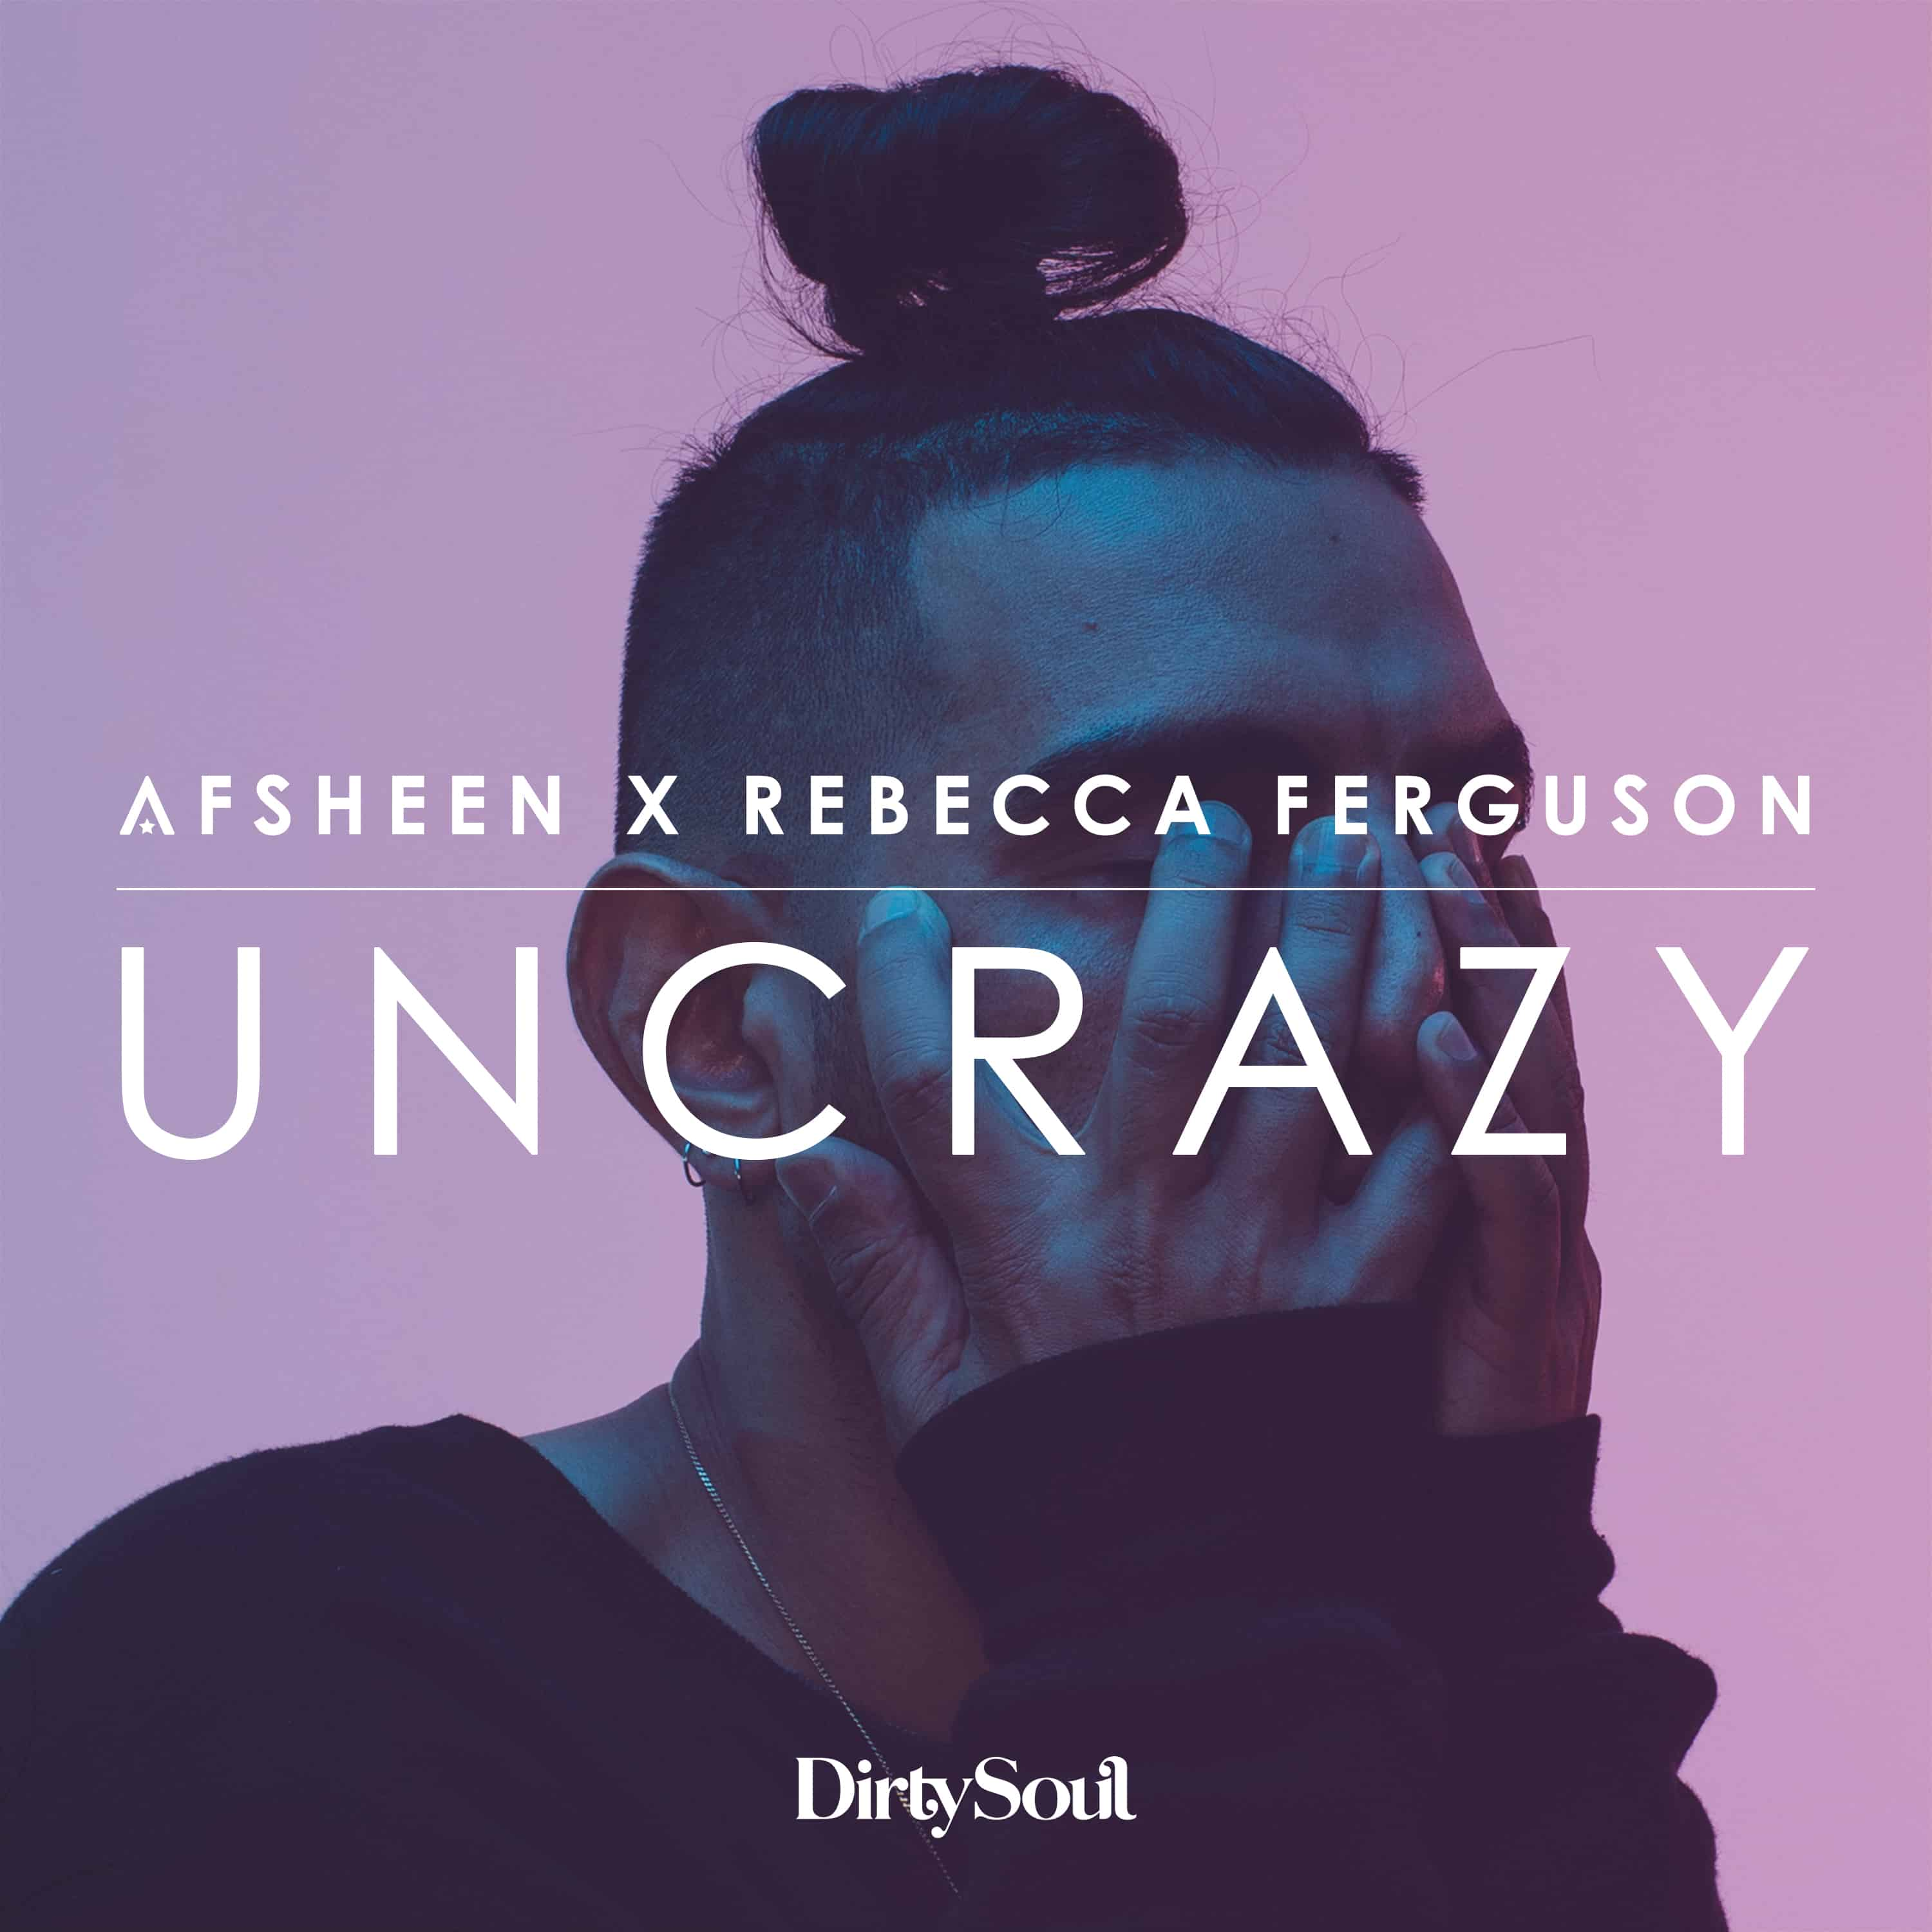 AFSHeeN Collaborates with Rebecca Ferguson to Release 'Uncrazy' on Dirty Soul/Be Yourself